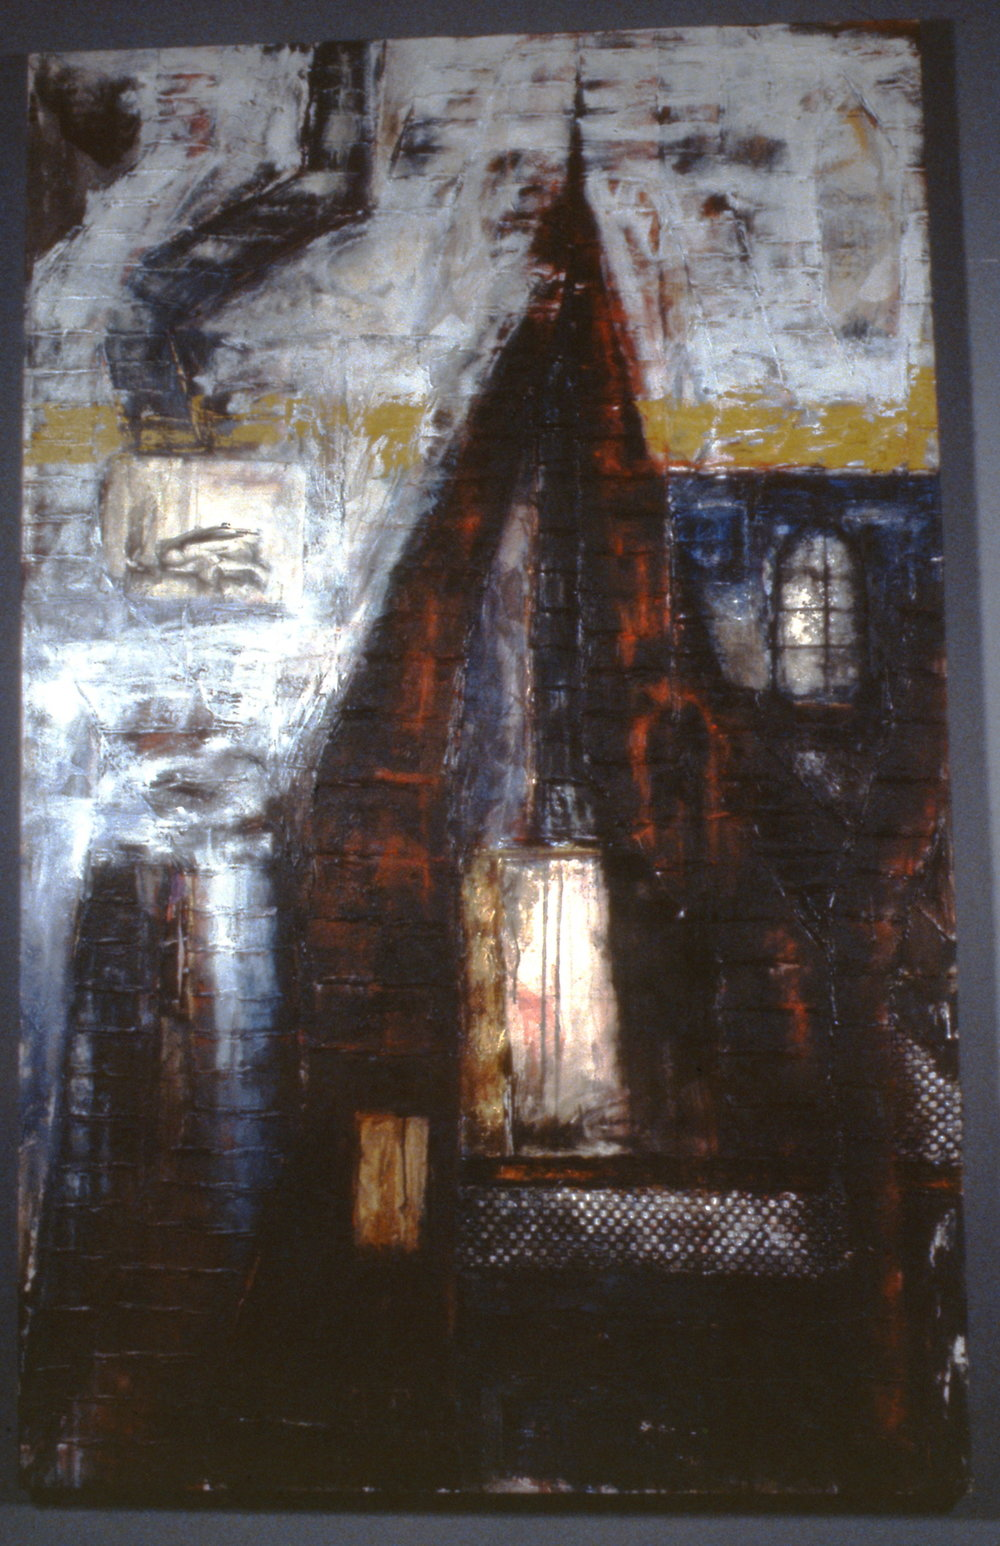 Chimney Symphony,  c. 1991,    Robin Costain, acrylic and collage on canvas, 1996.05.01